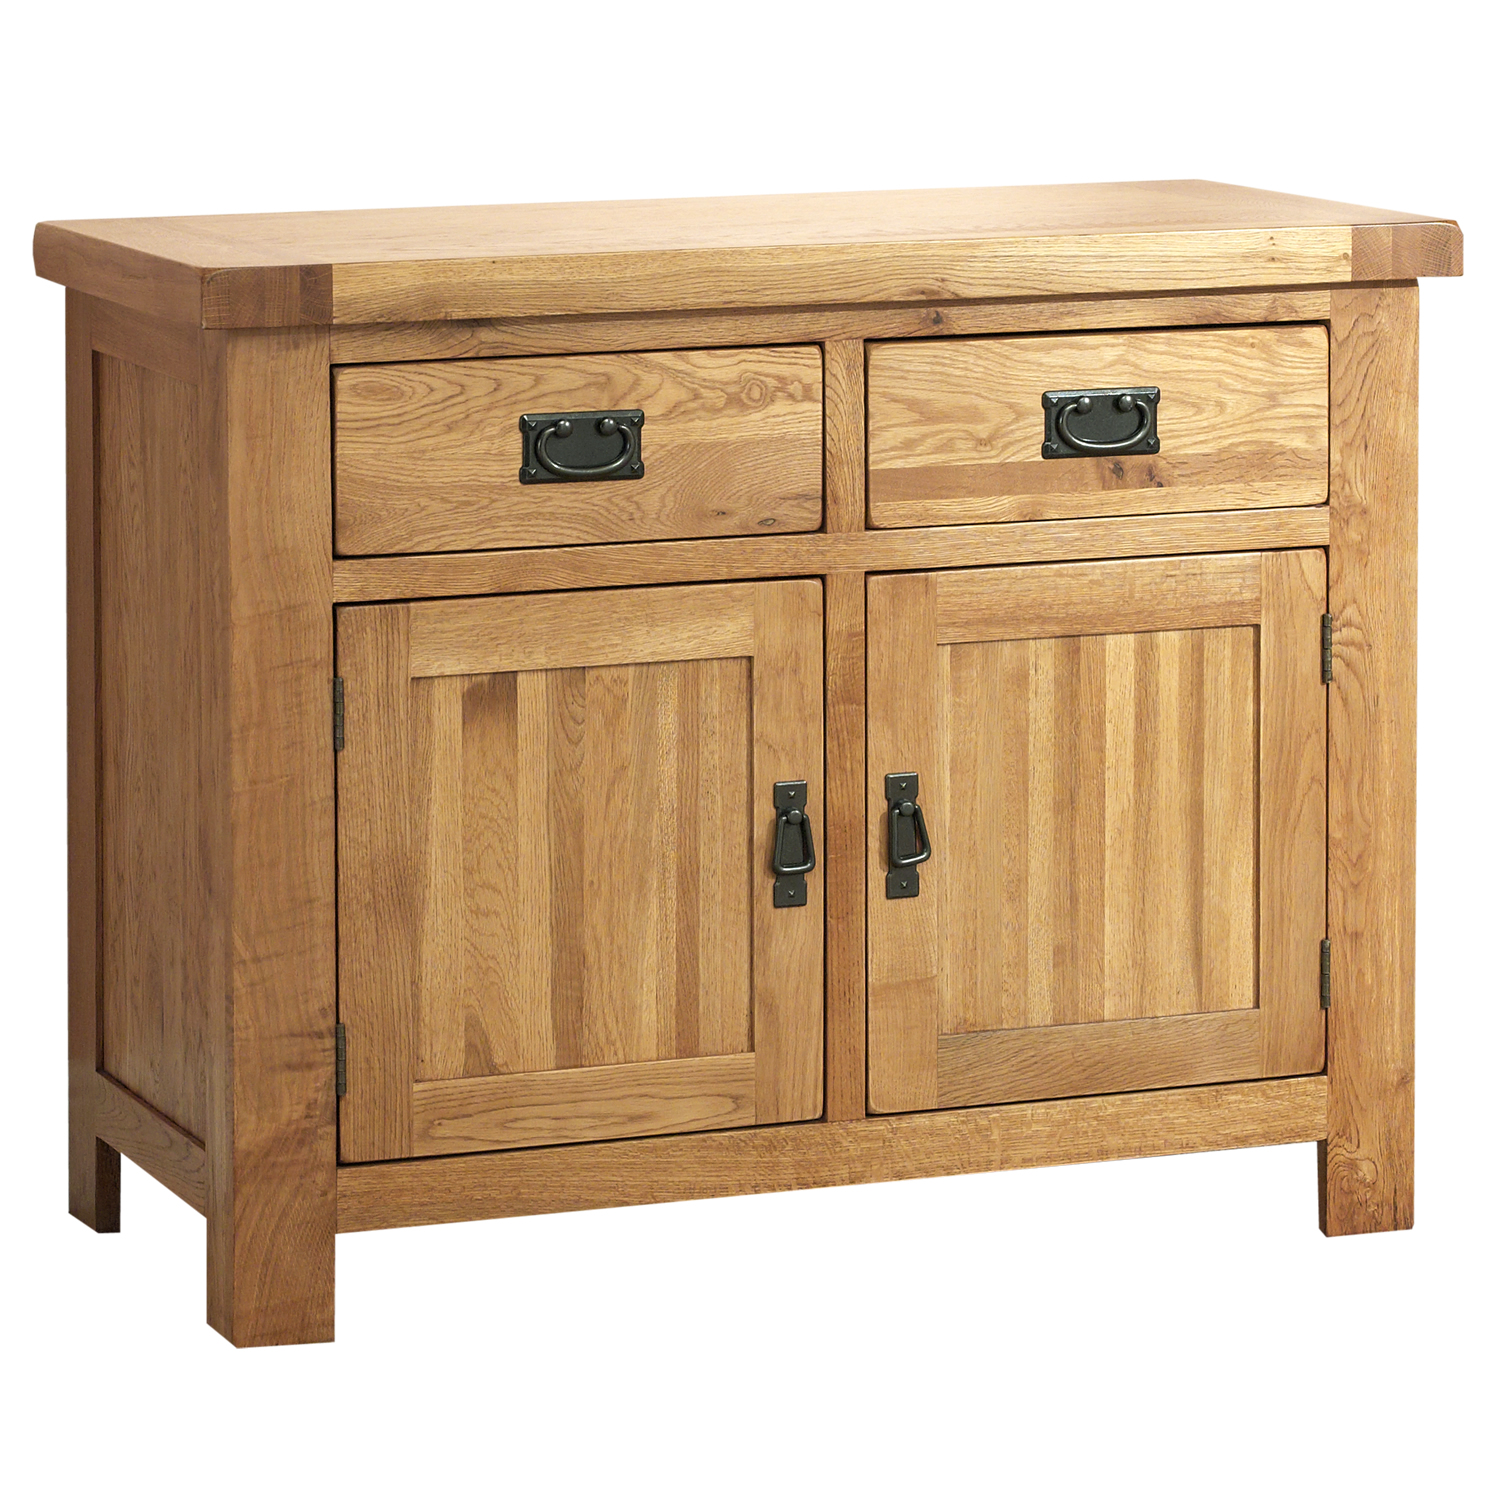 Light oak sideboard modern design furniture